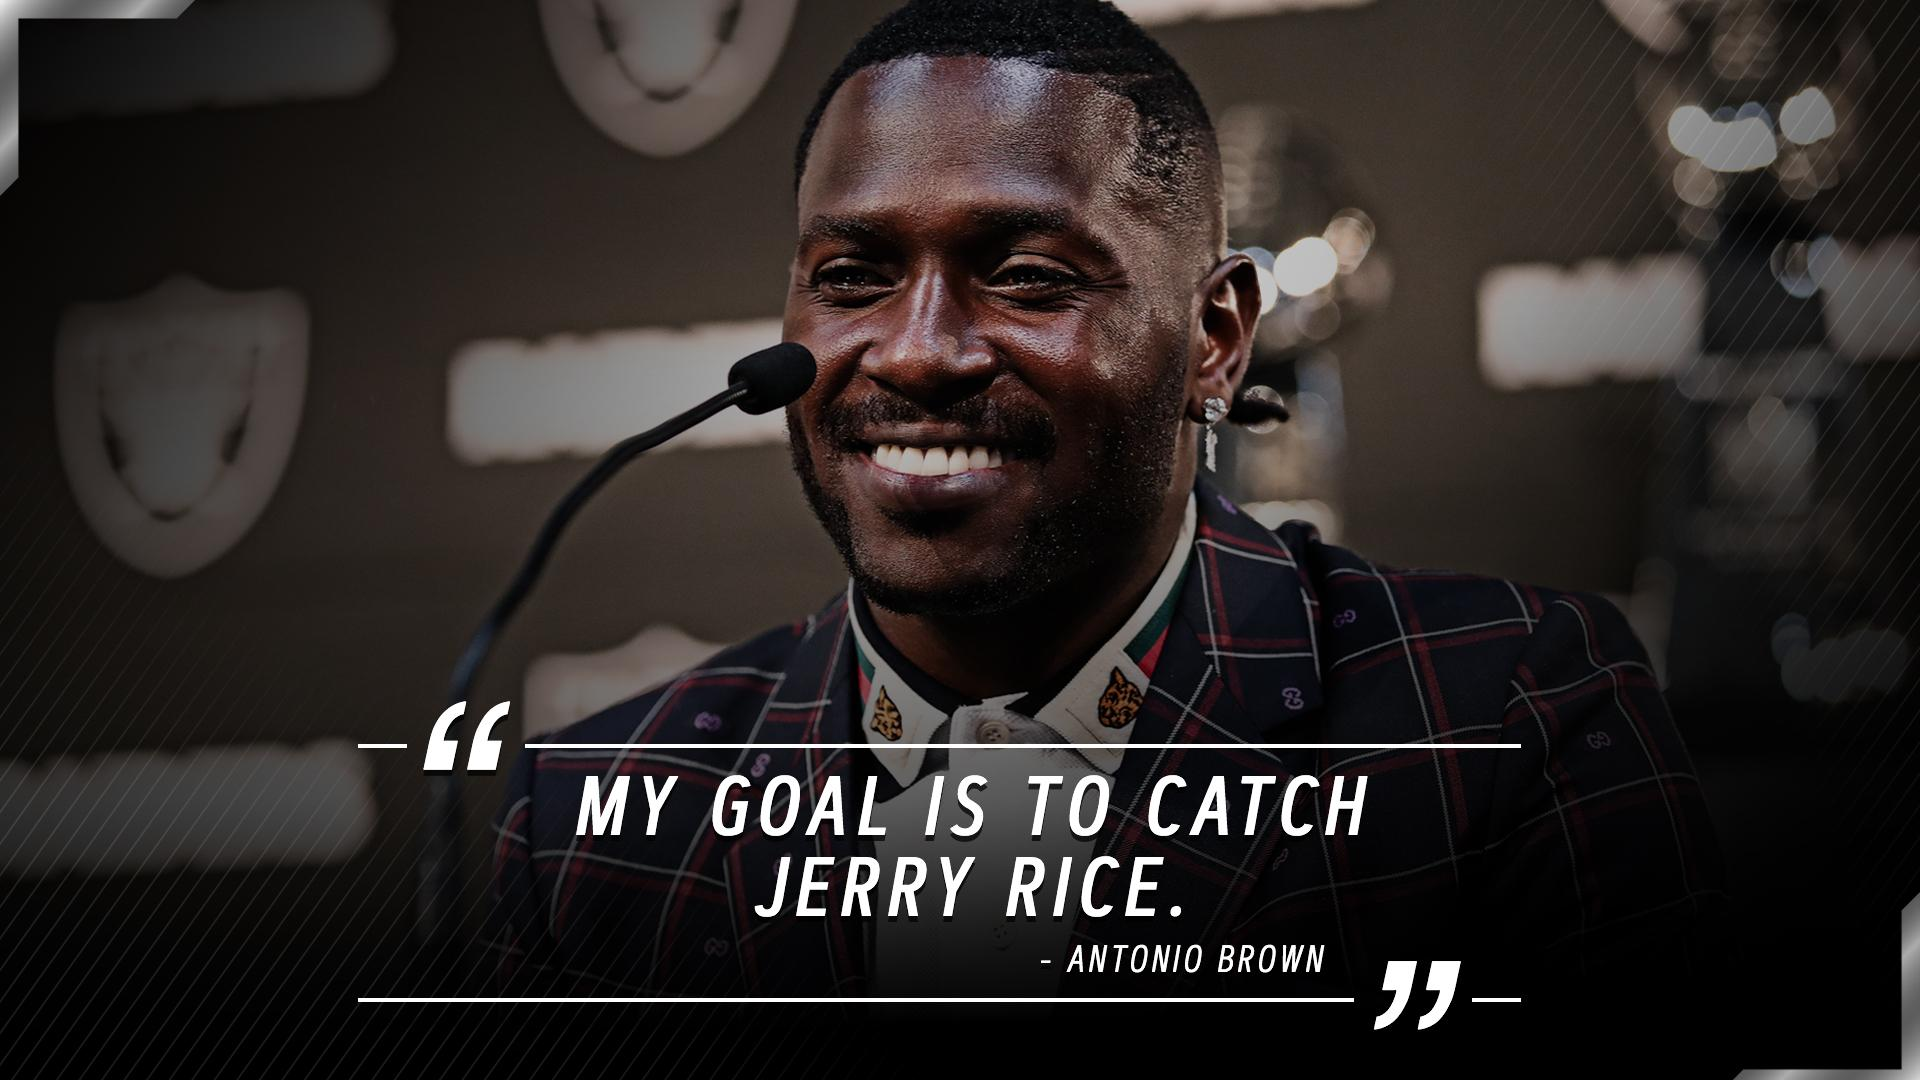 Why settle for less than the best?  @AB84 wants to be legendary: https://t.co/12e5BN8h3F https://t.co/2oEnJD0Epc